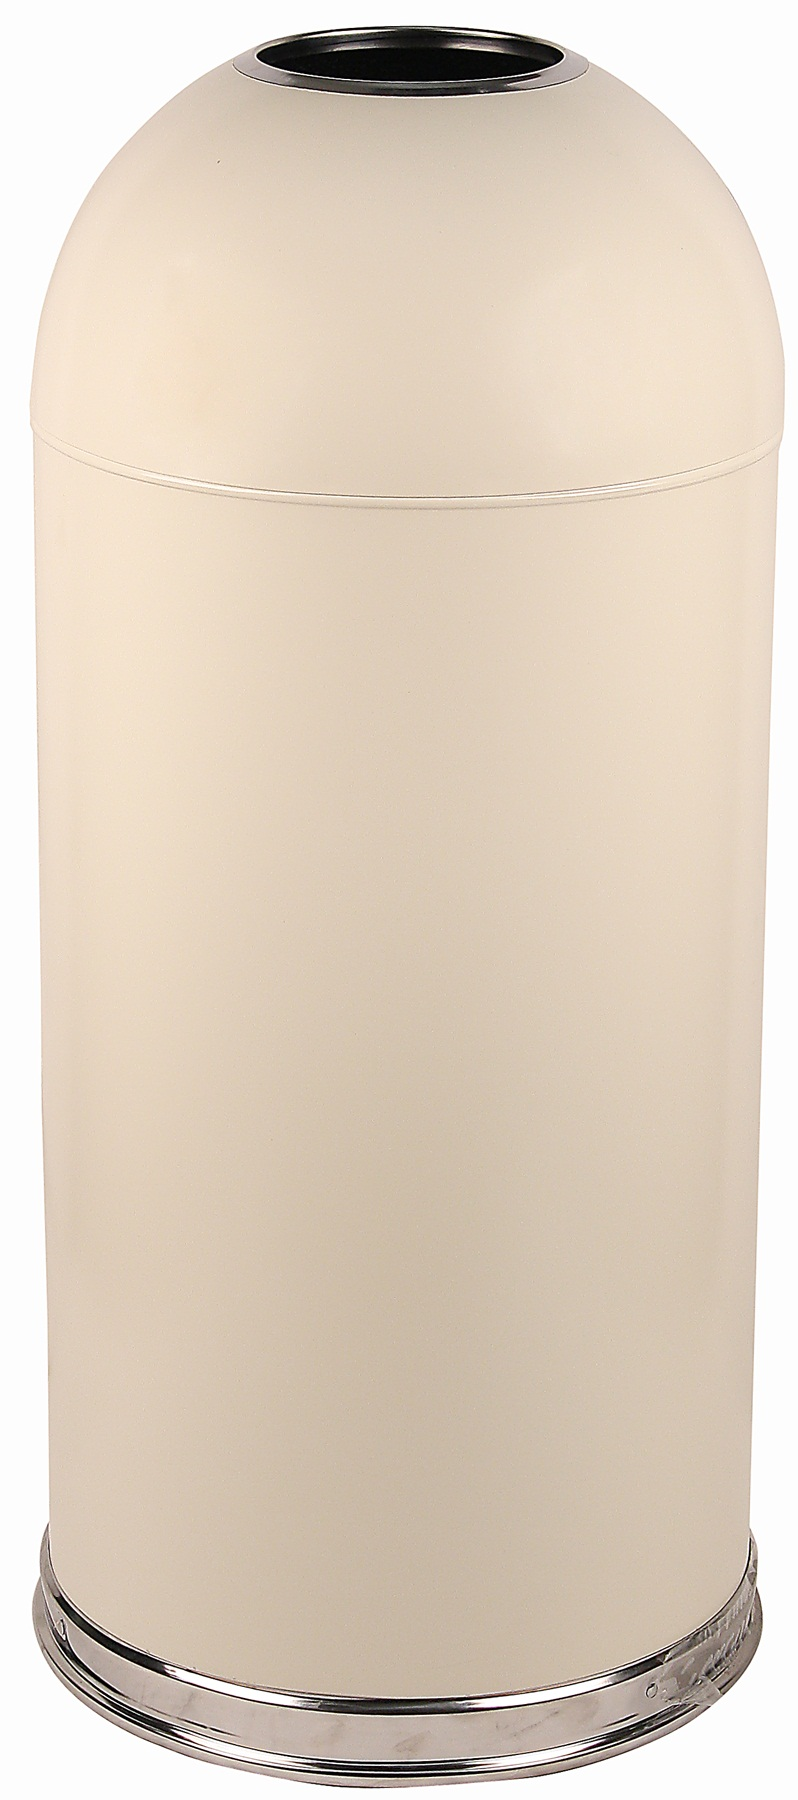 Standard Dometop Receptacle with Open Top